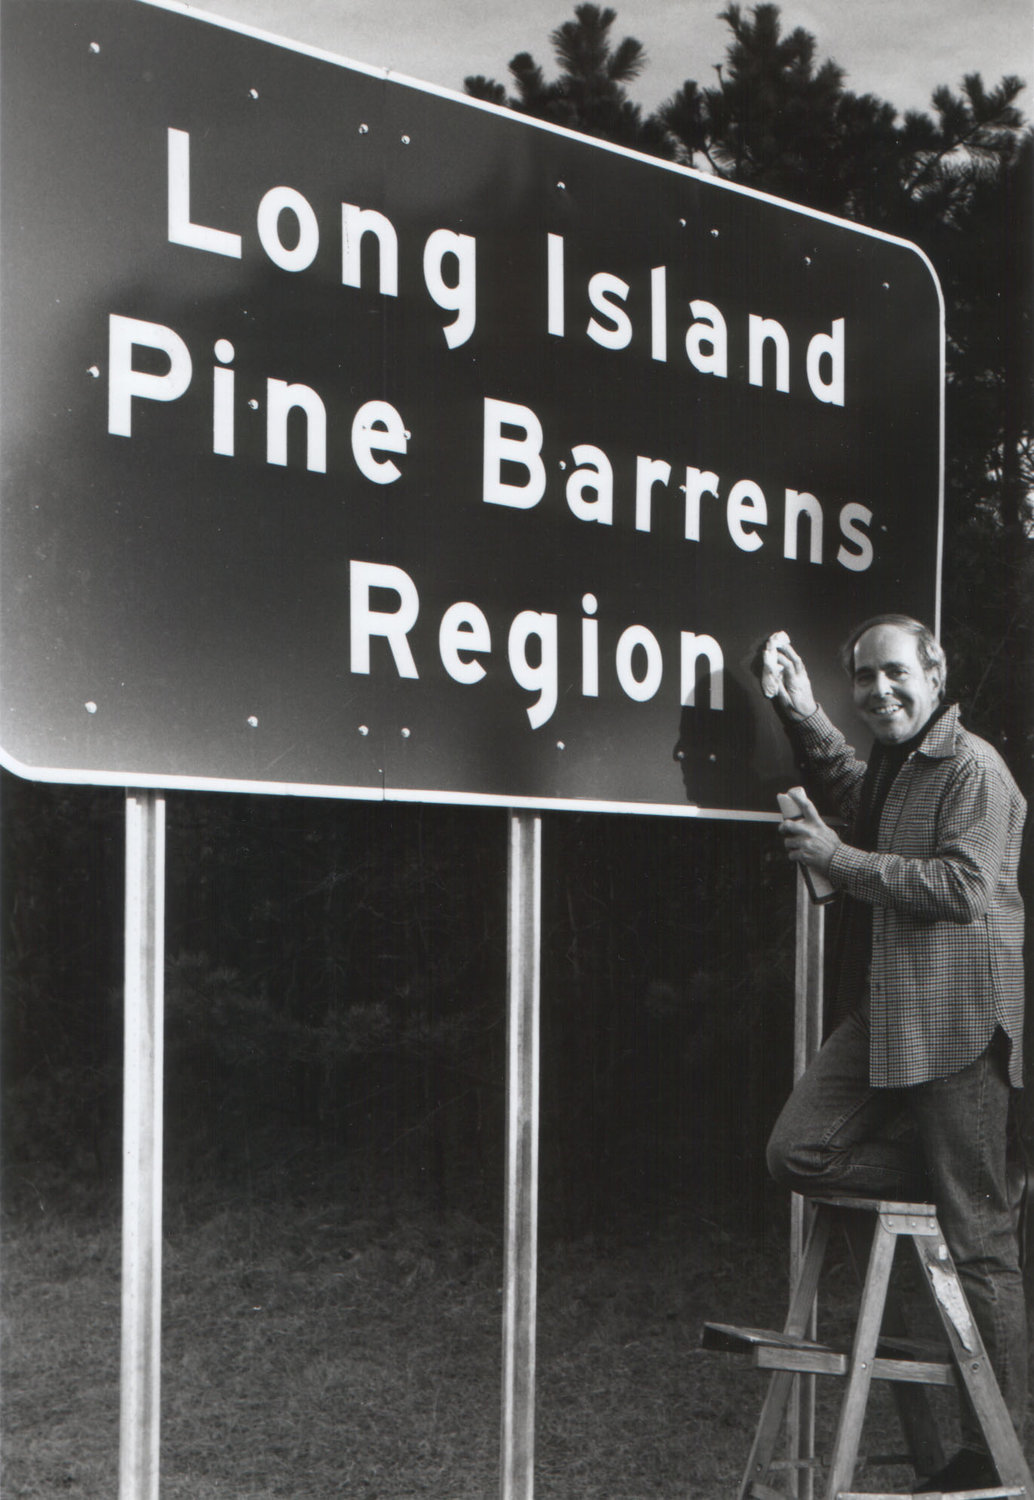 The society's mission began on Amper's kitchen table. Now, the Long Island Pine Barrens Society is responsible for preserving over 100,000 acres.